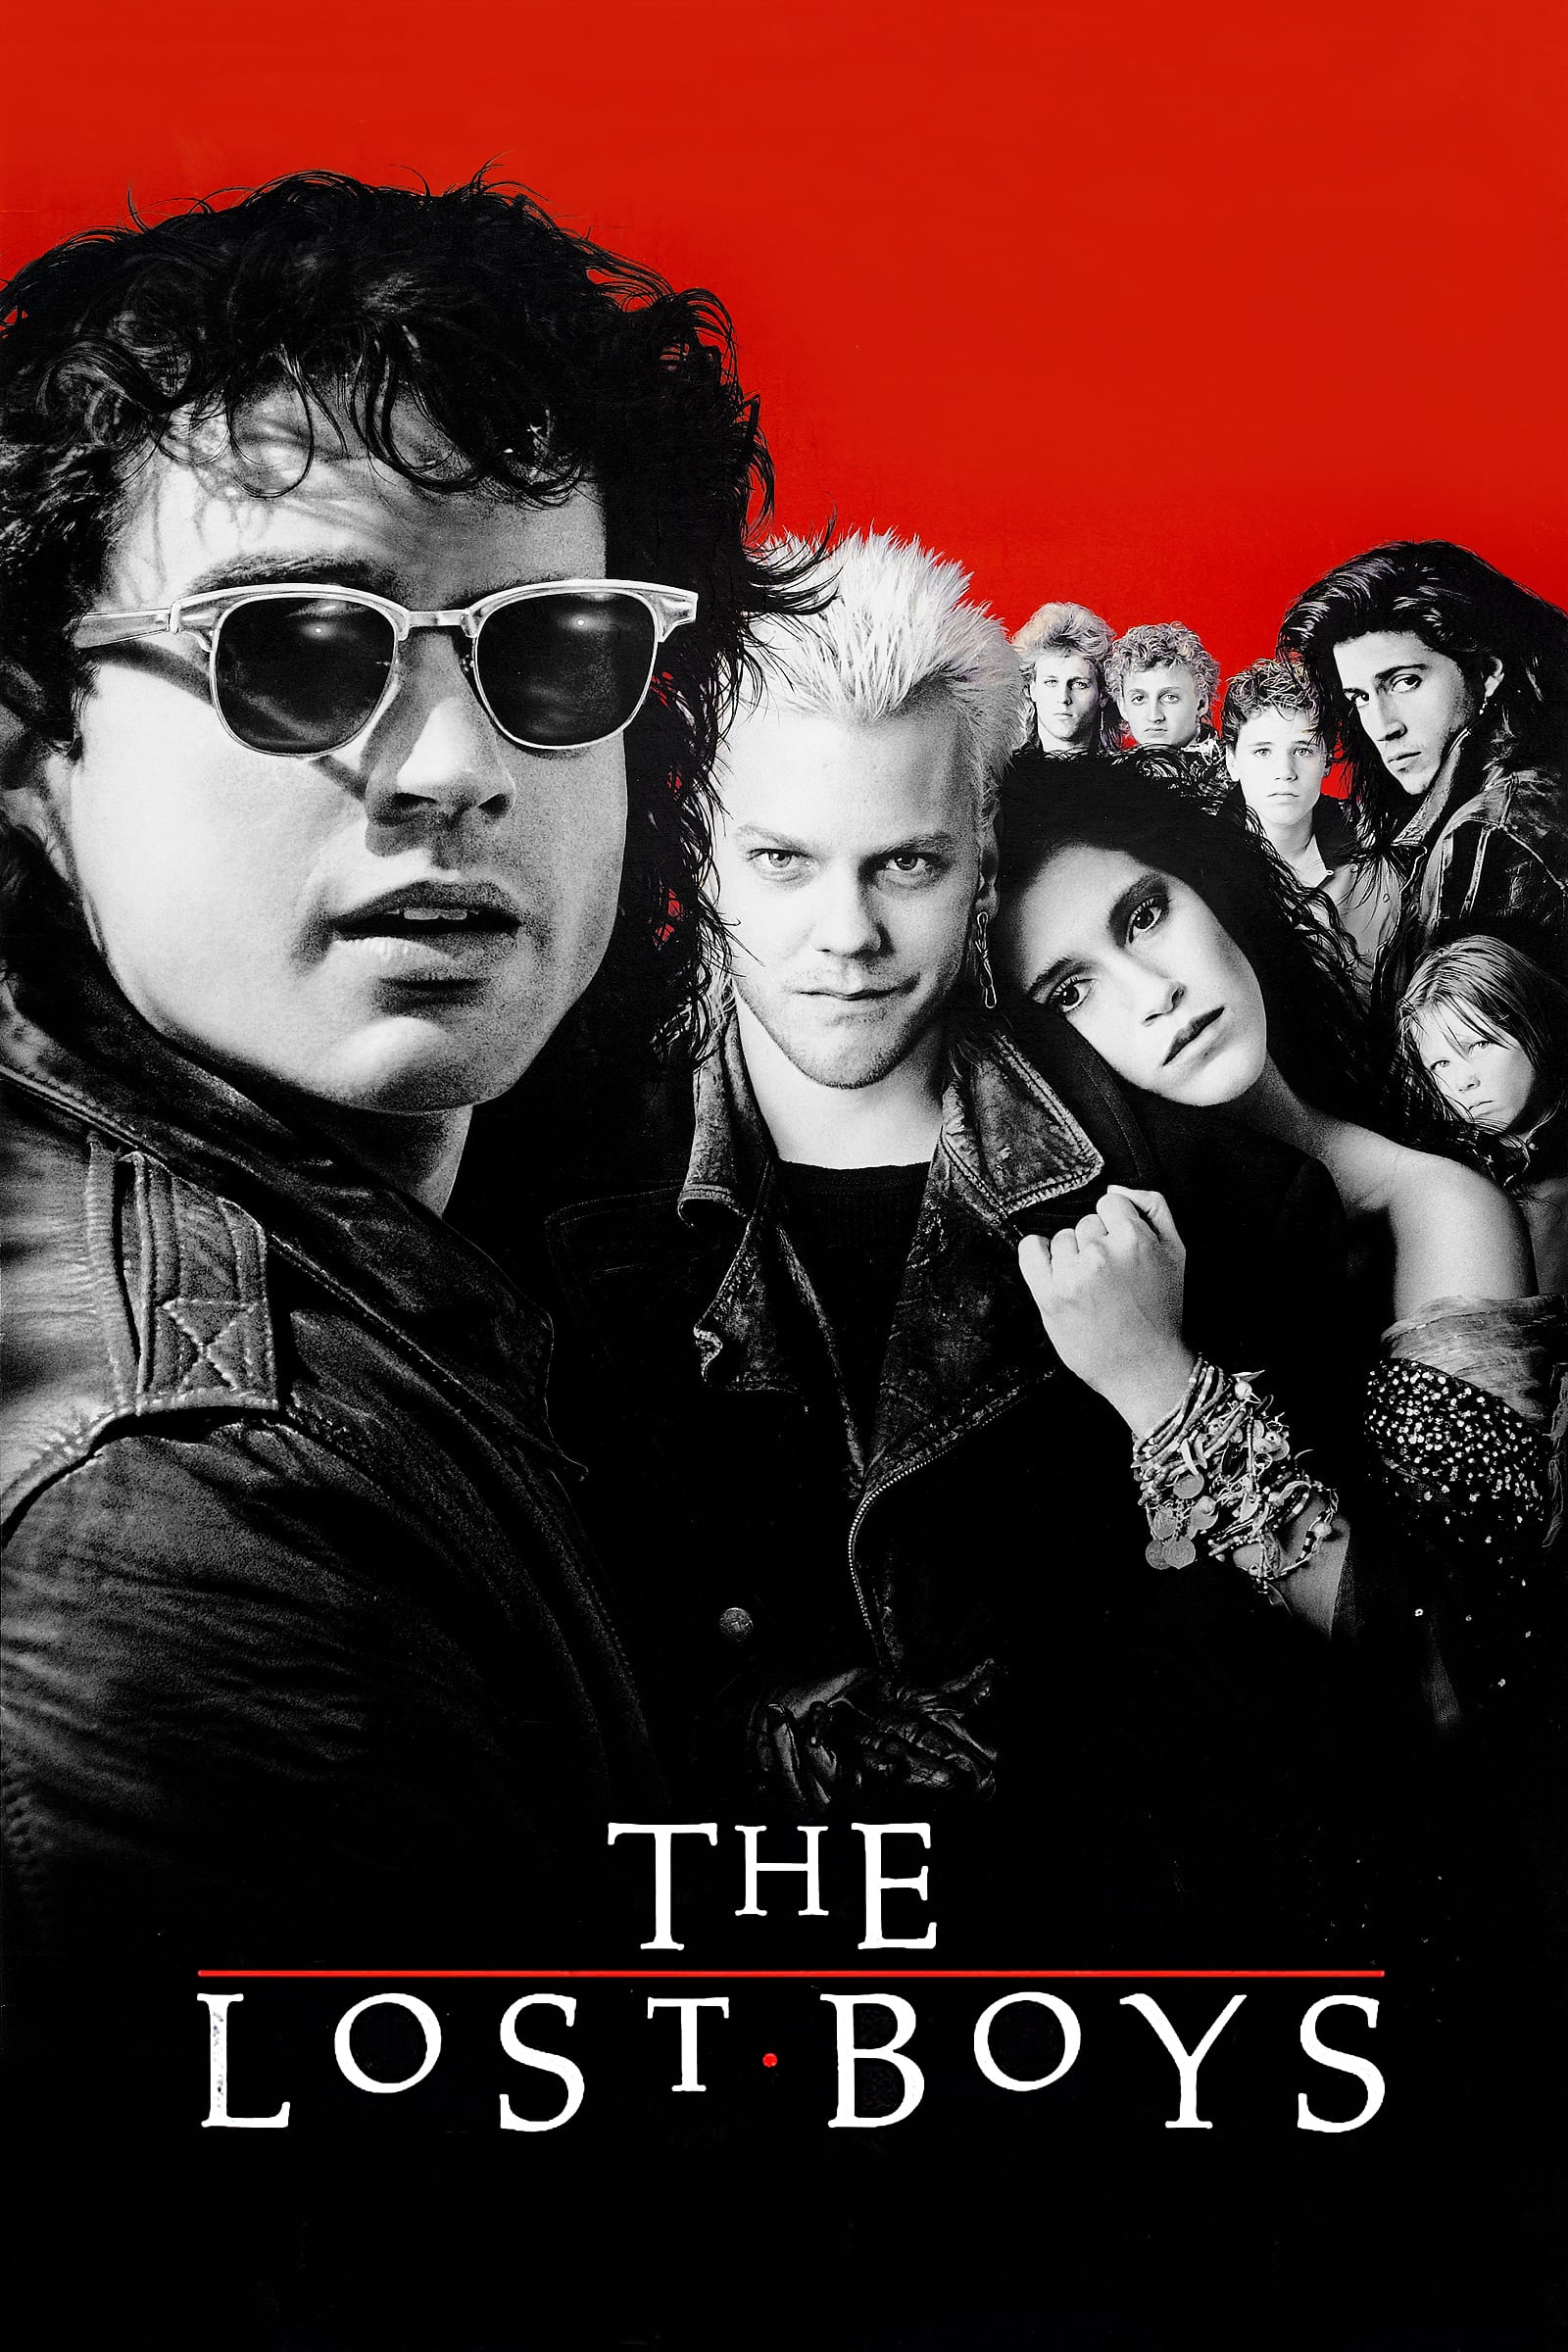 The Lost Boys Movie Streaming Online Watch on Google Play, Youtube, iTunes